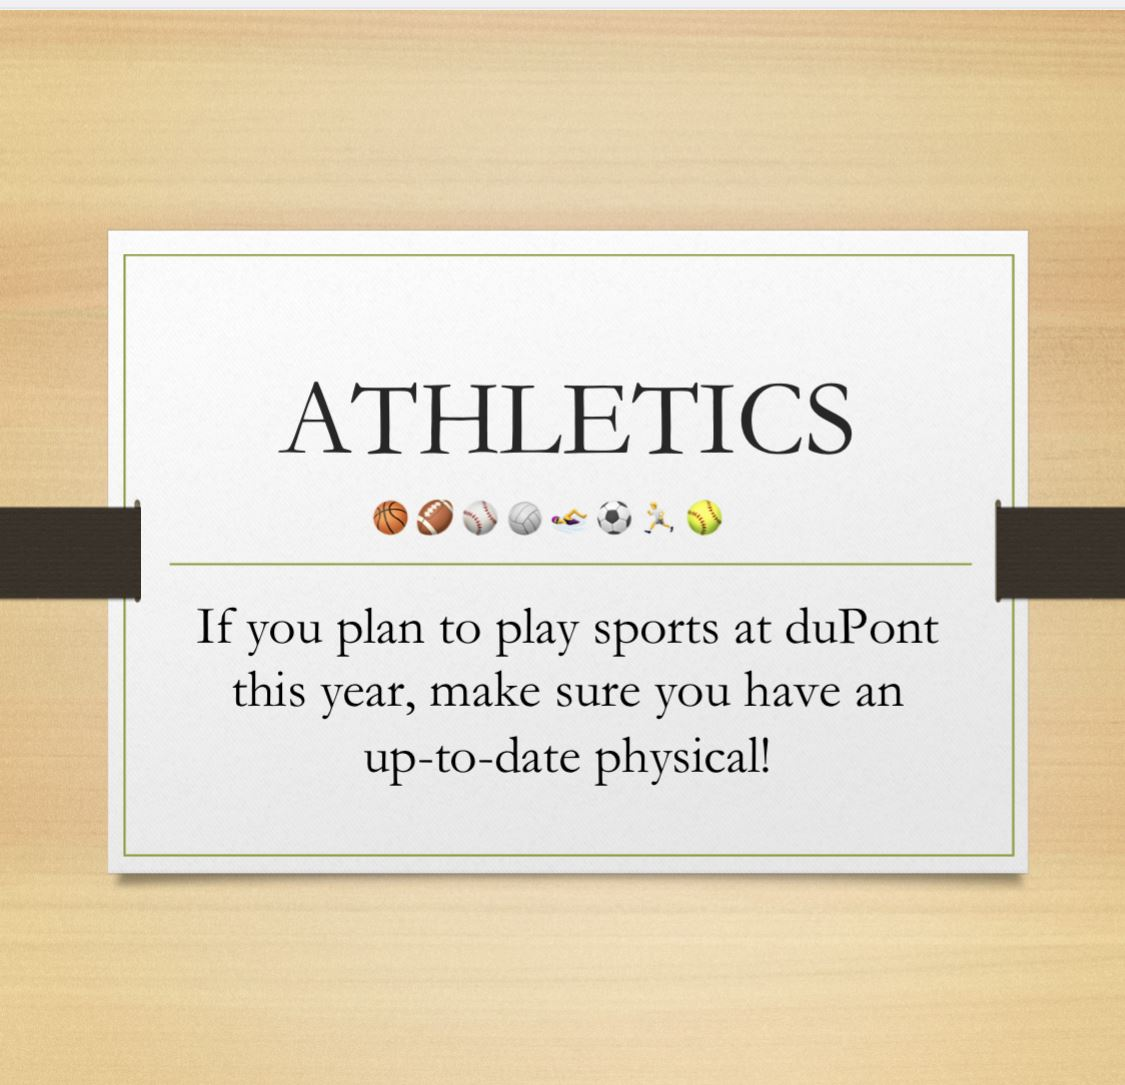 Interested in Playing sports at duPont for the 20-21 school year? Don't forget your physical!